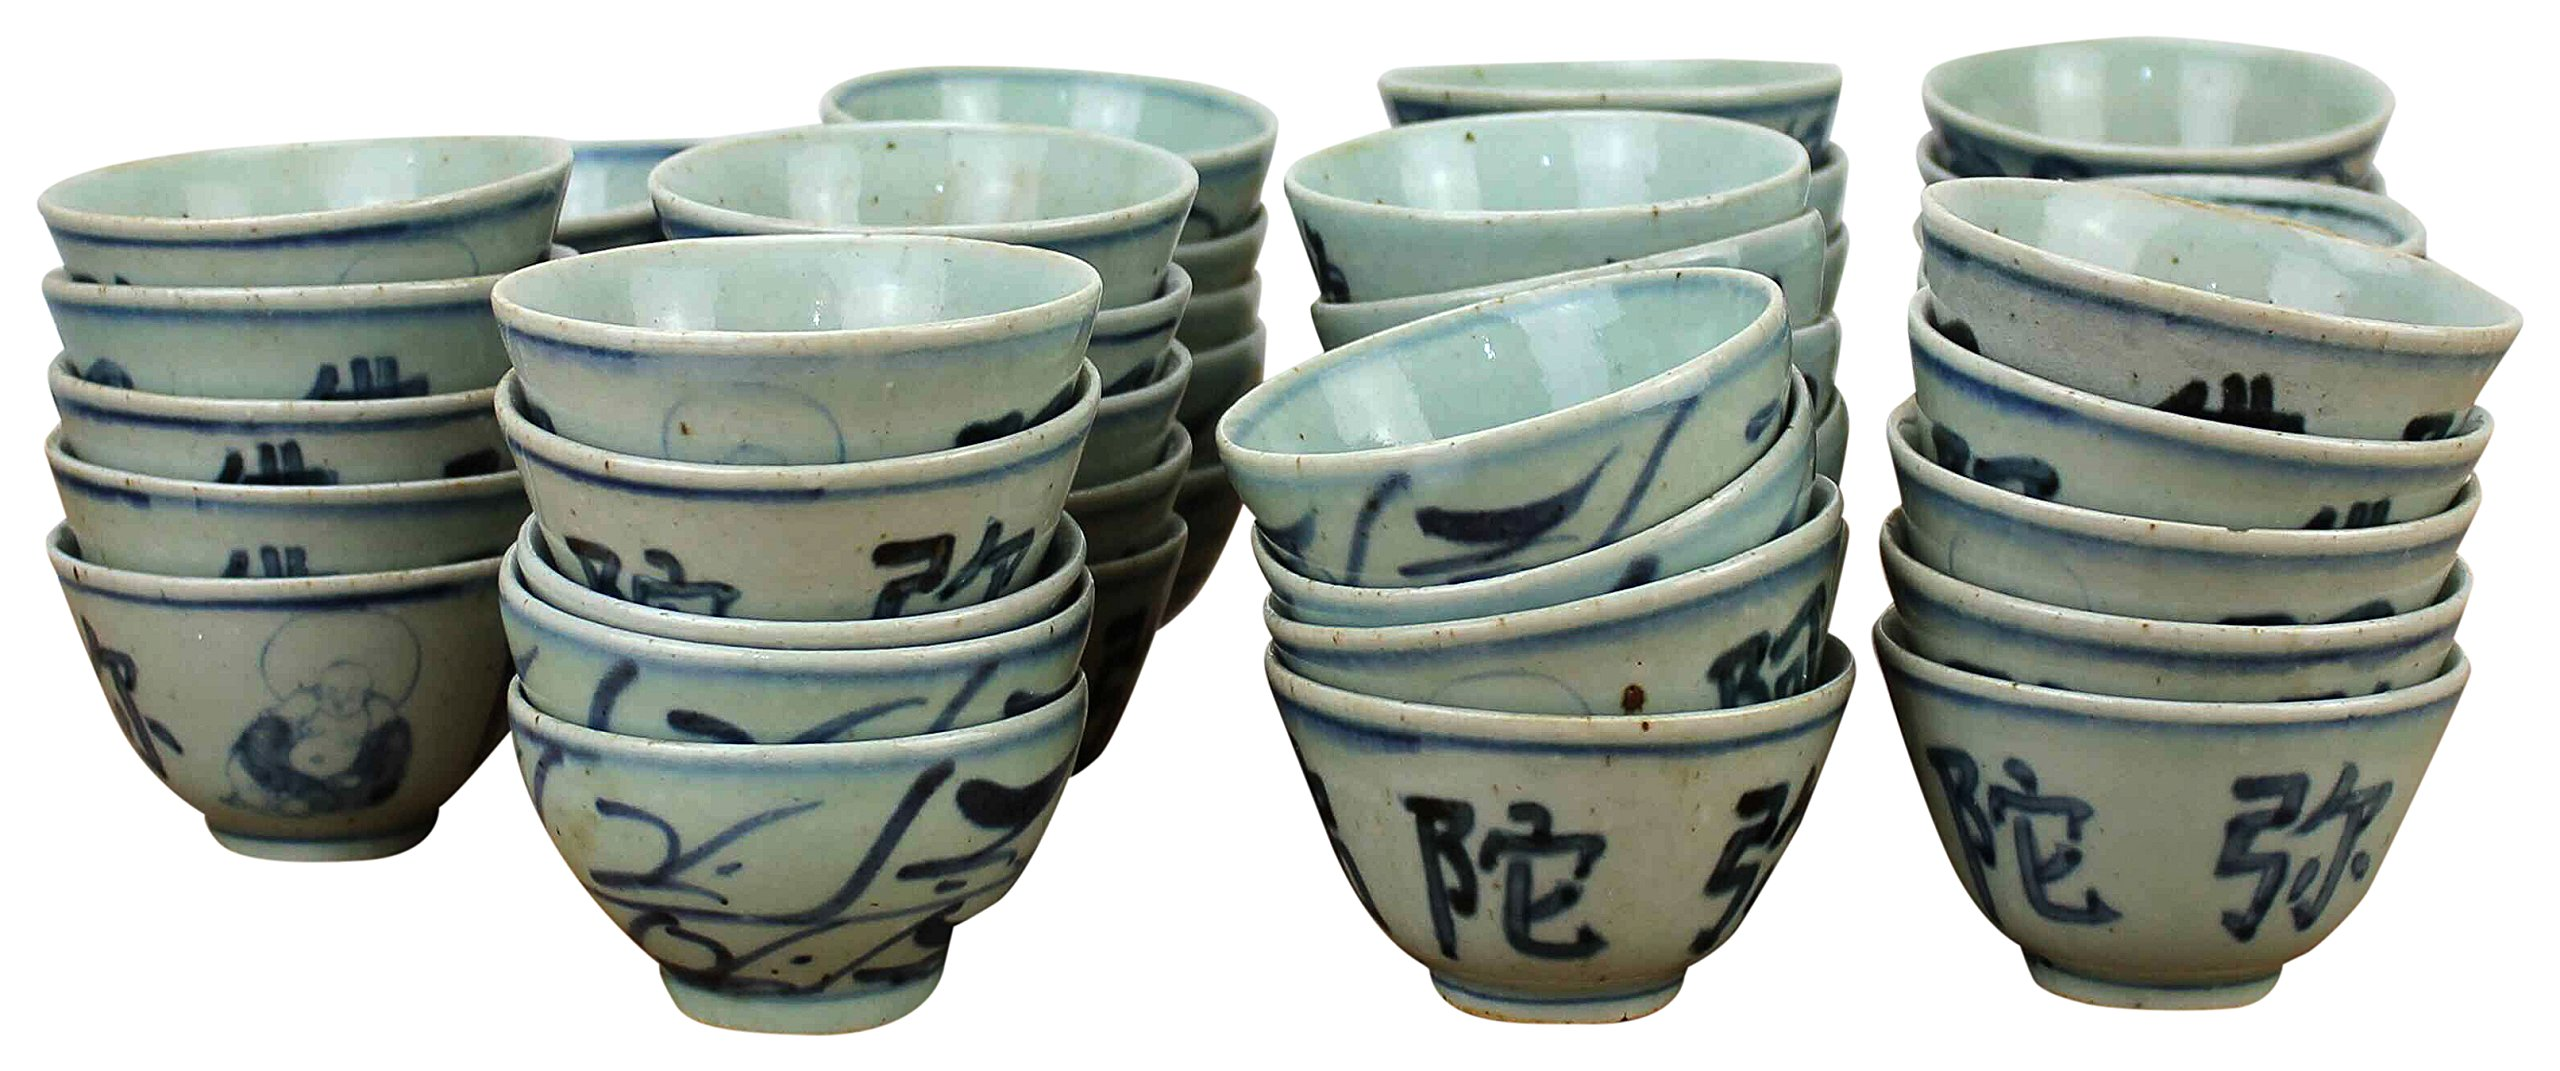 Sarreid SA-AN020 Collection of 77 Cups, Blue/White by Sarreid